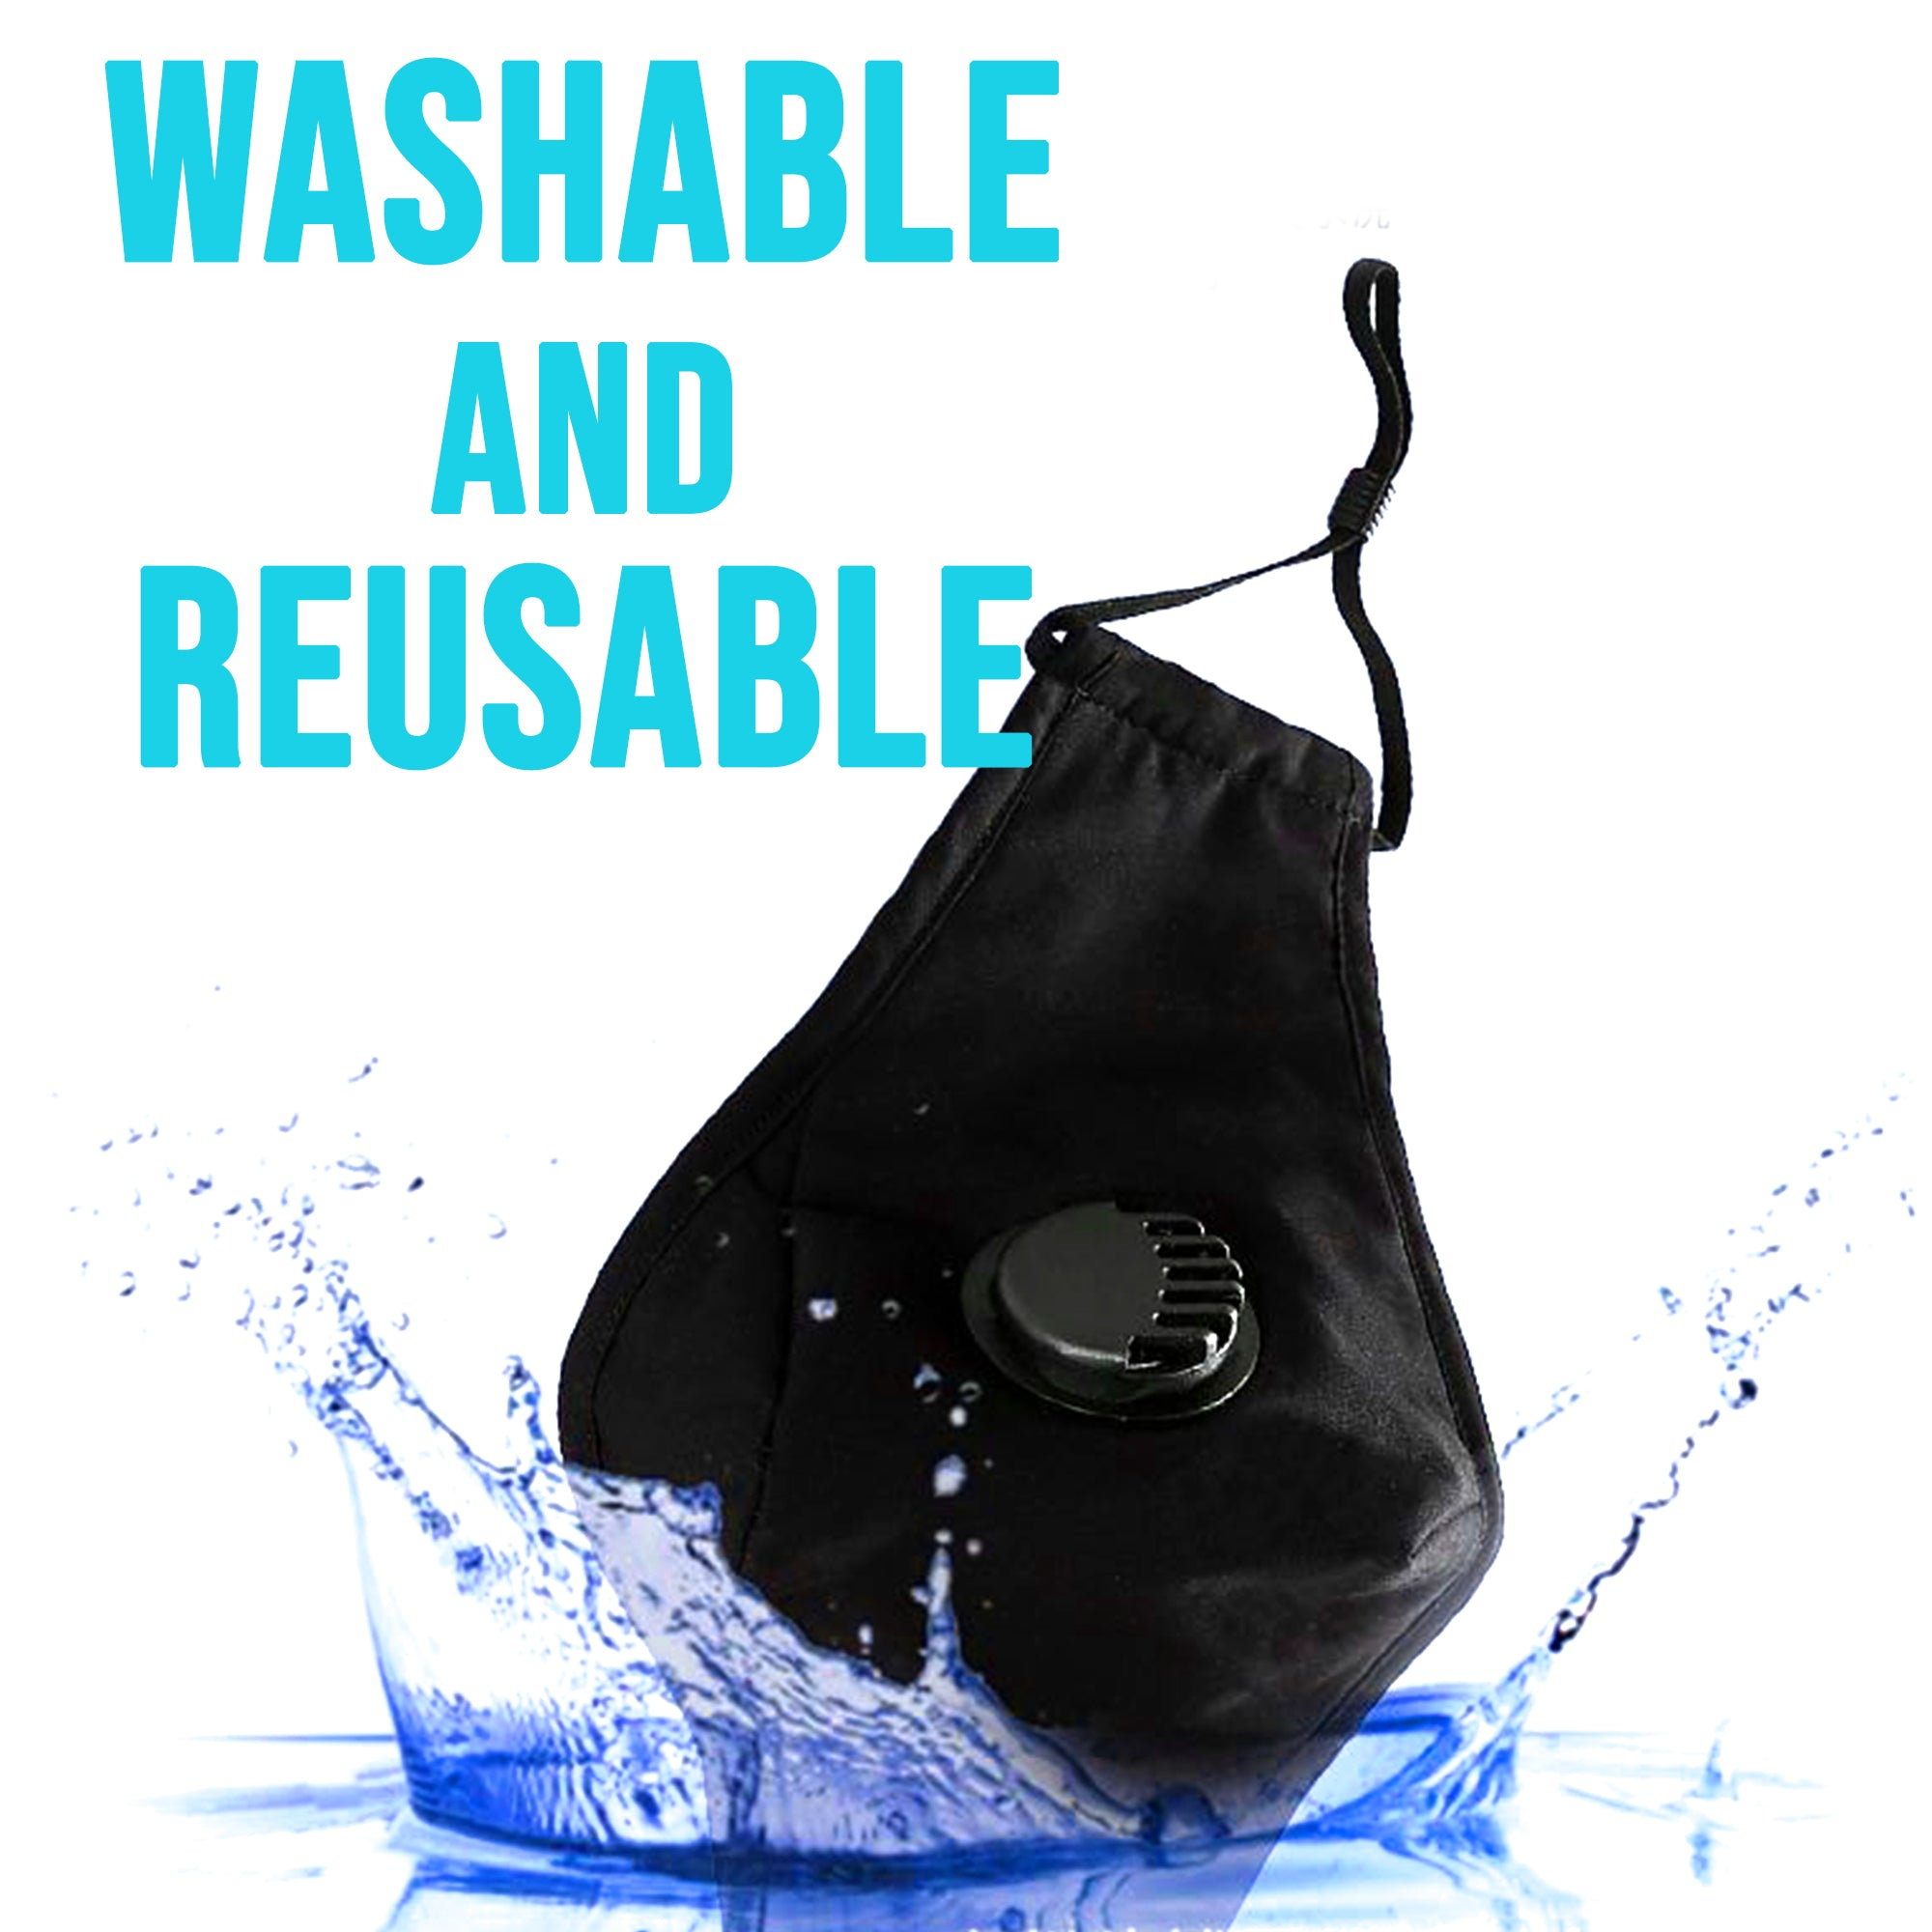 3D Cotton  Washable Face Mask with Filter Pocket w/ 3 filters - SOP-TECHNOLOGIES, INC.